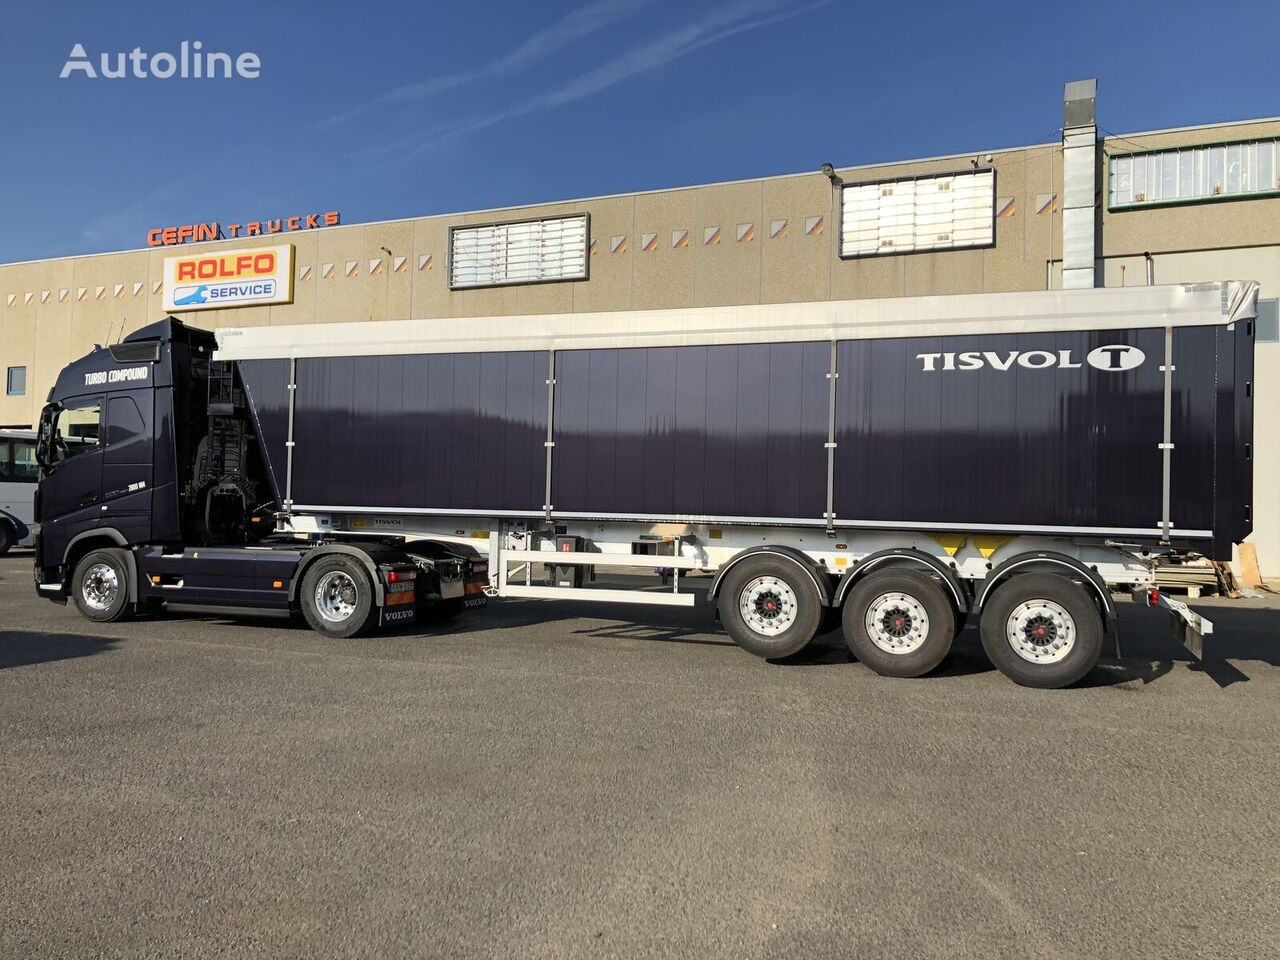 TISVOL CERES 58m3 tipper semi-trailer